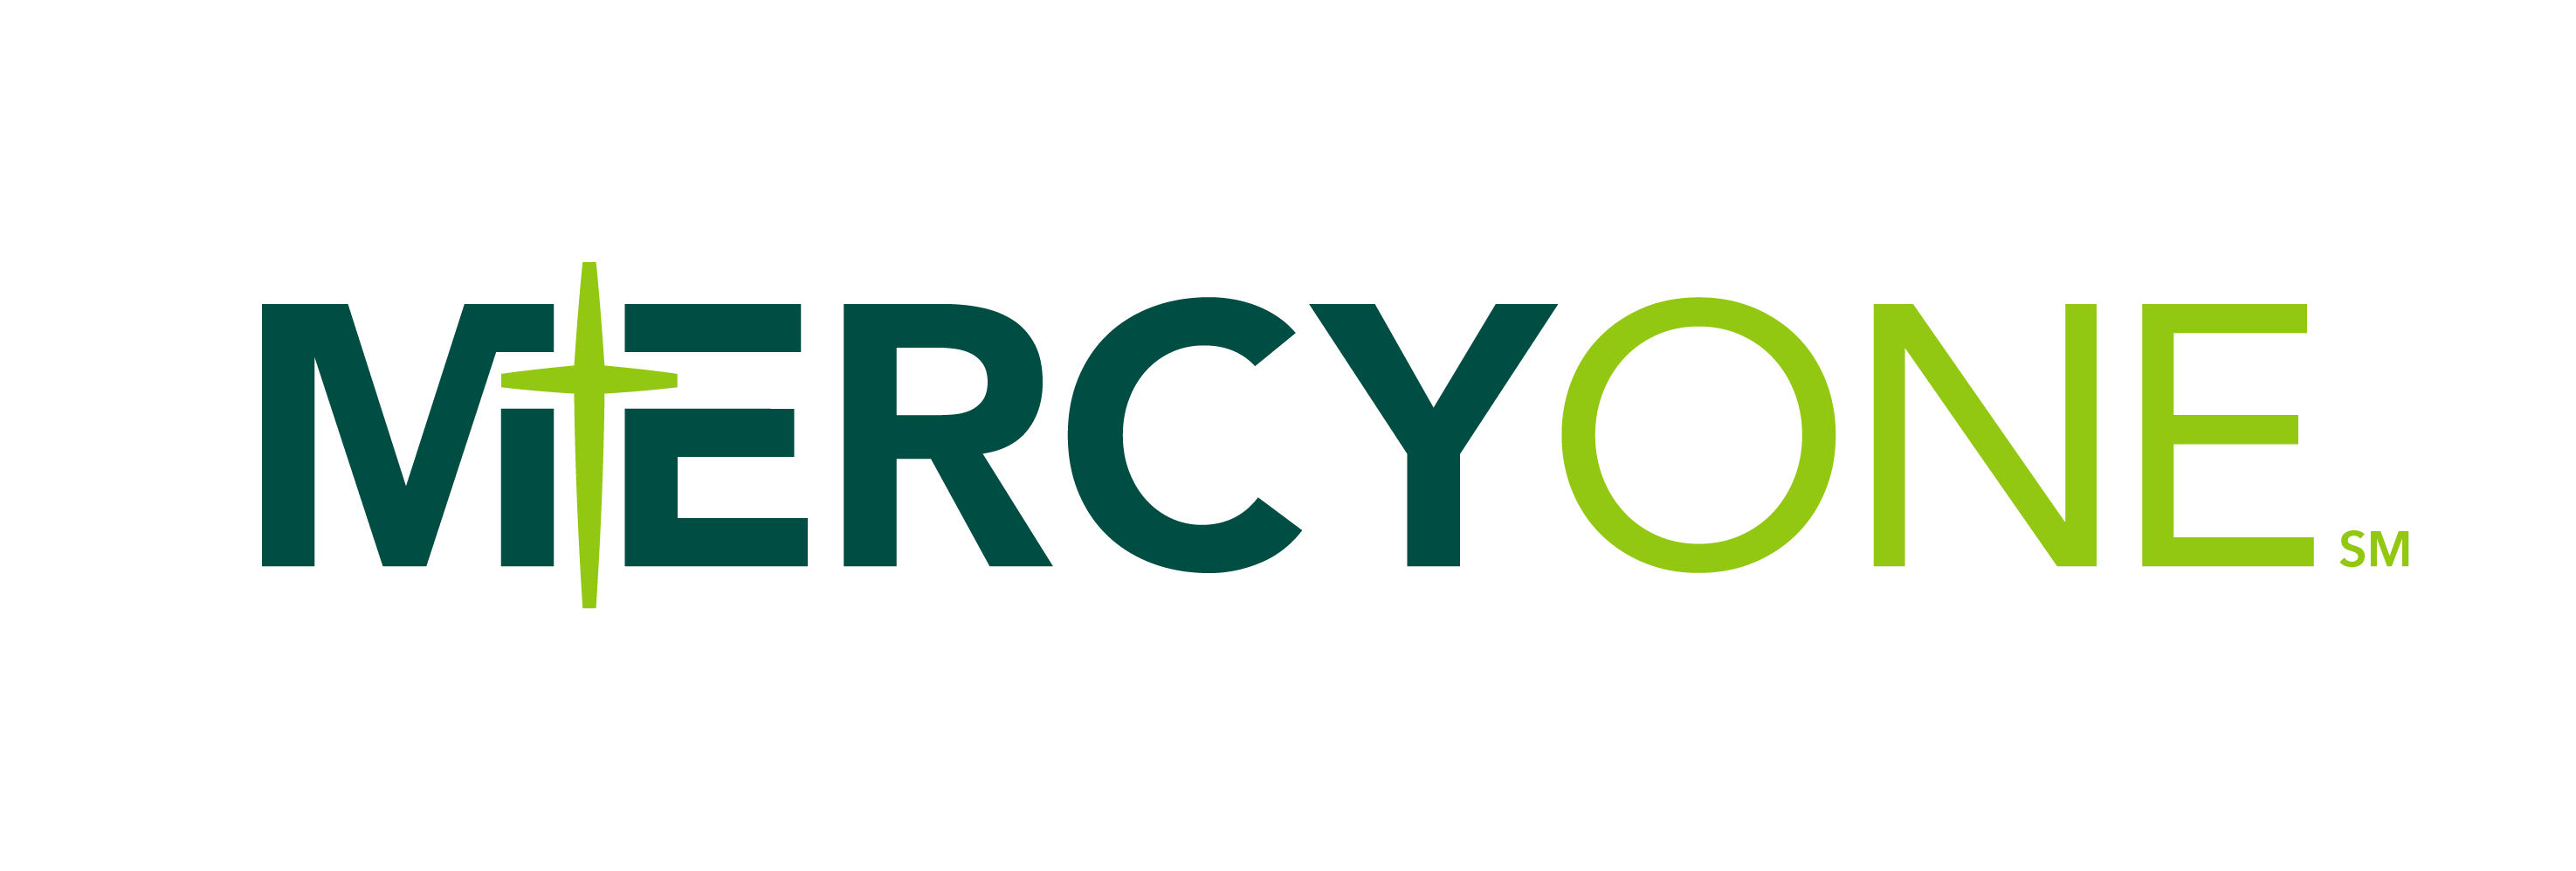 Davis County Hospital Affiliate Partner Mercy Health Network Introduces Mercyone As New Statewide Name And Unified Brand